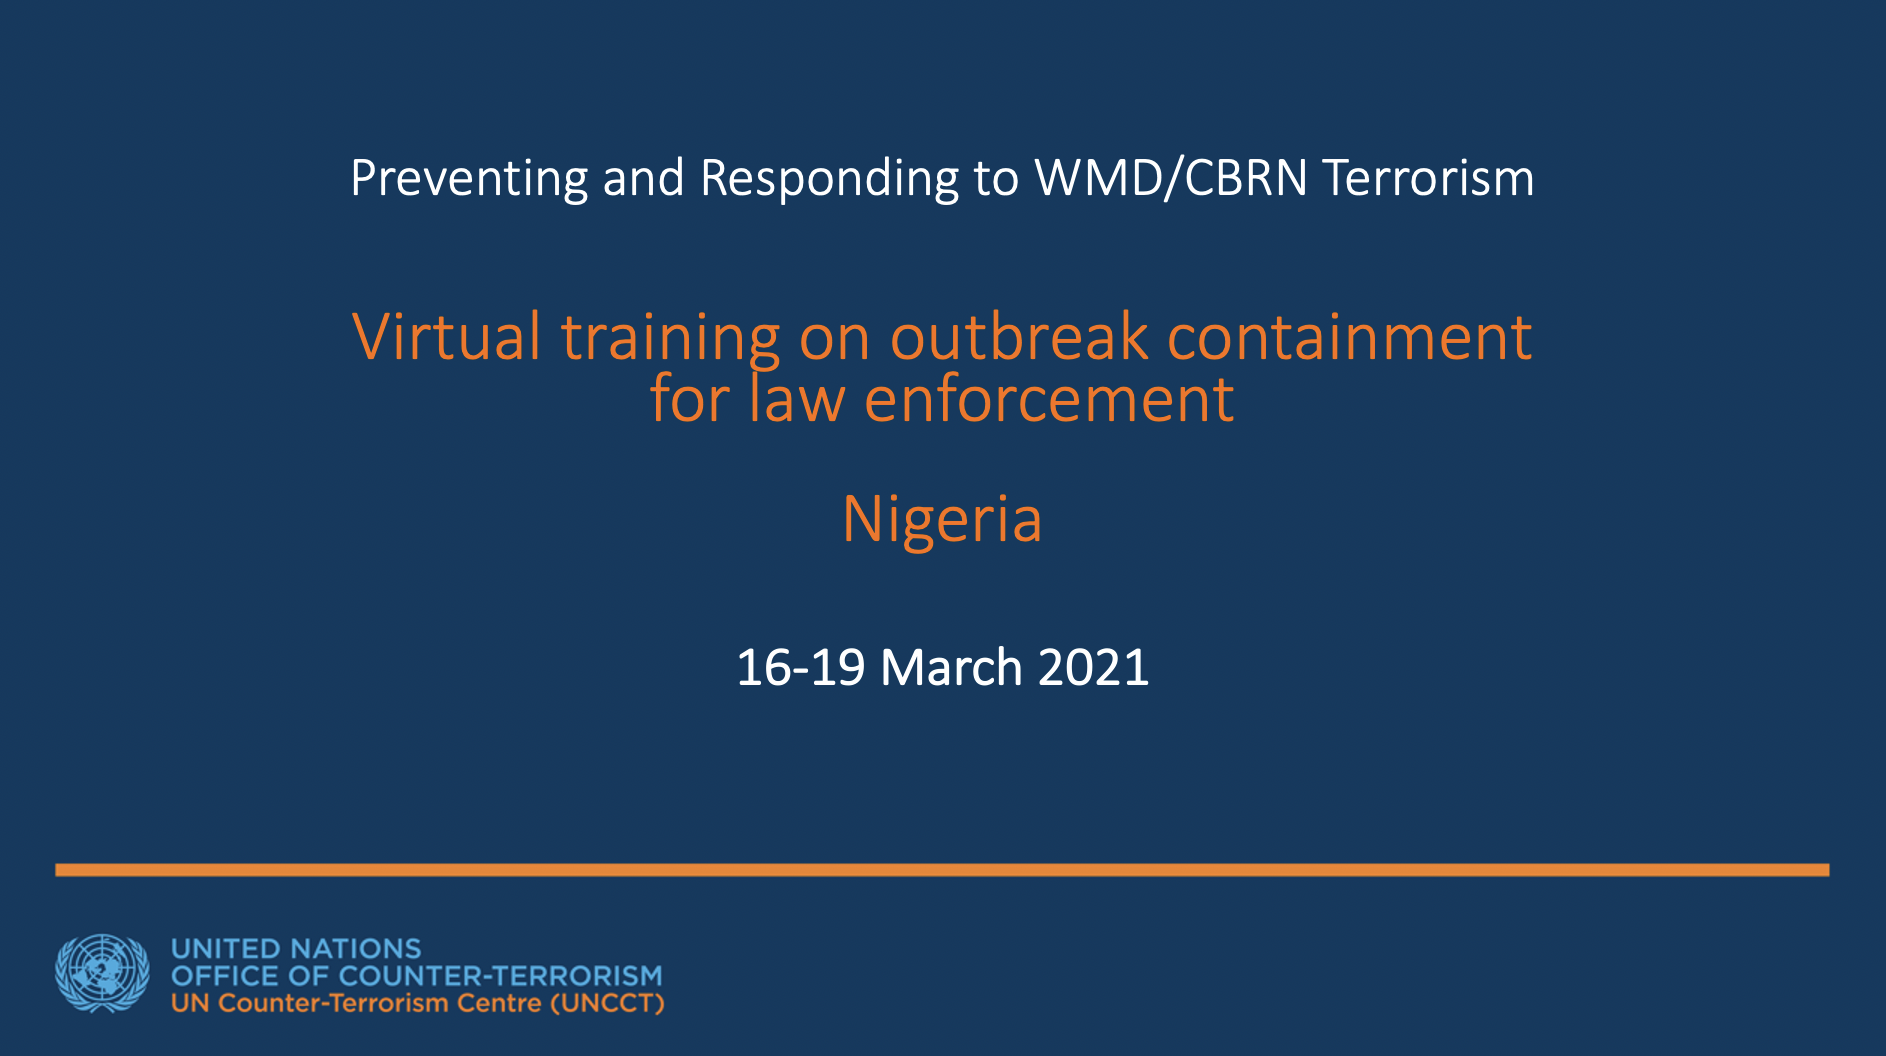 Graphic of Virtual Training on Outbreak Containment for Law Enforcement for Nigeria